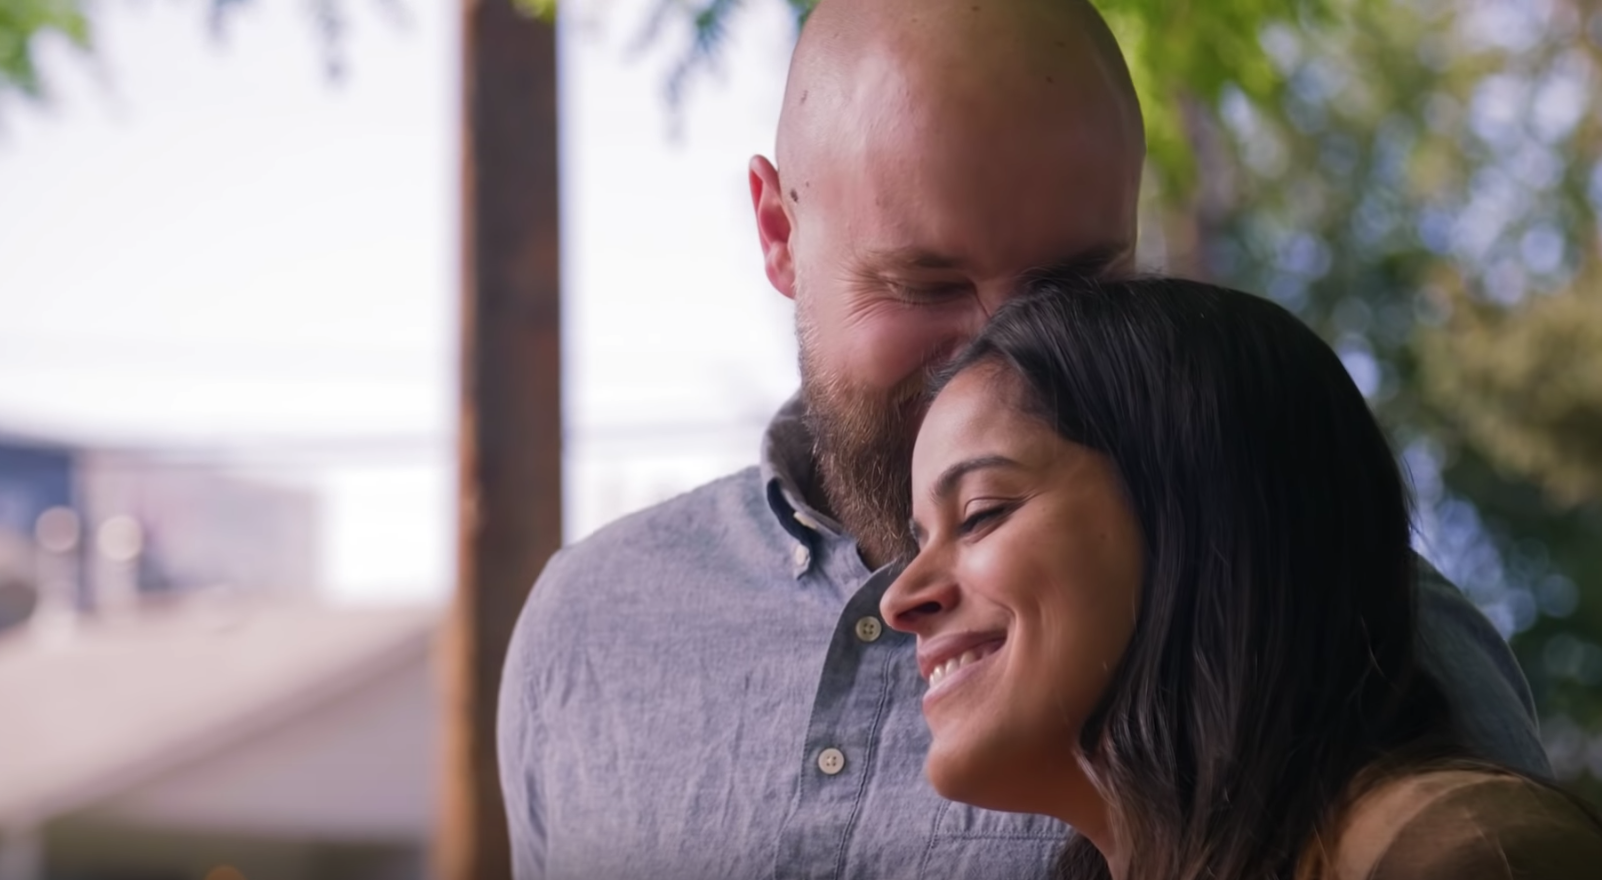 Screenshot of Mormon Channel video that features the story of Brandon and Rebecca. The couple shared their experiences about when Brandon lost his faith in the Church and how they worked through it.